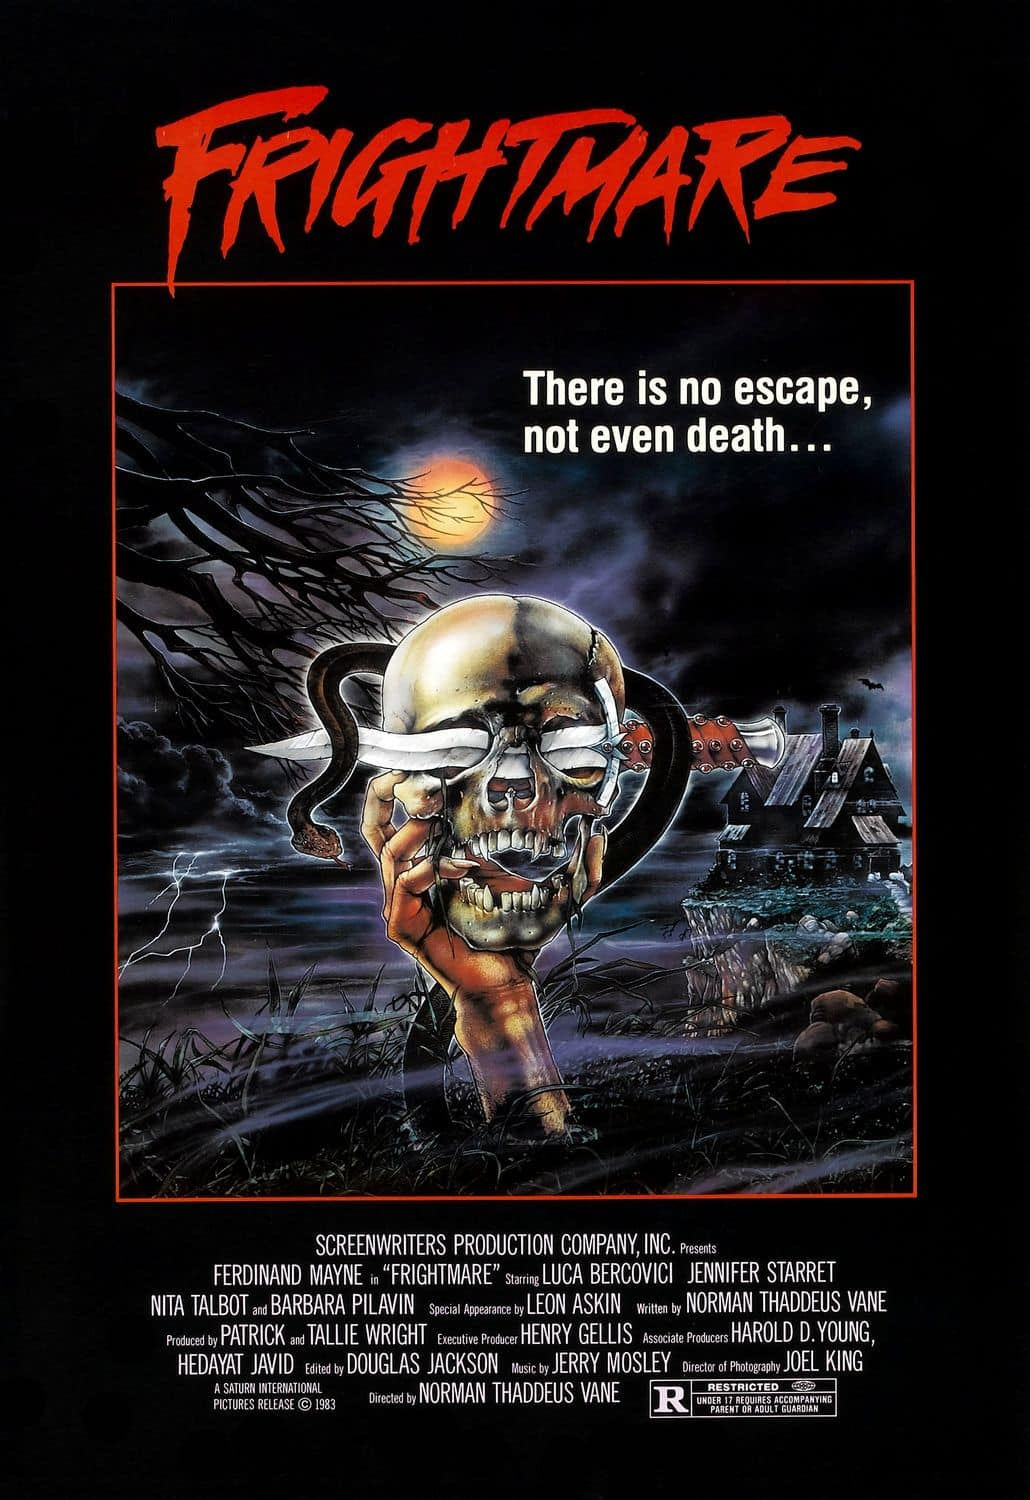 Movie Posters We Love: Frightmare (1983)